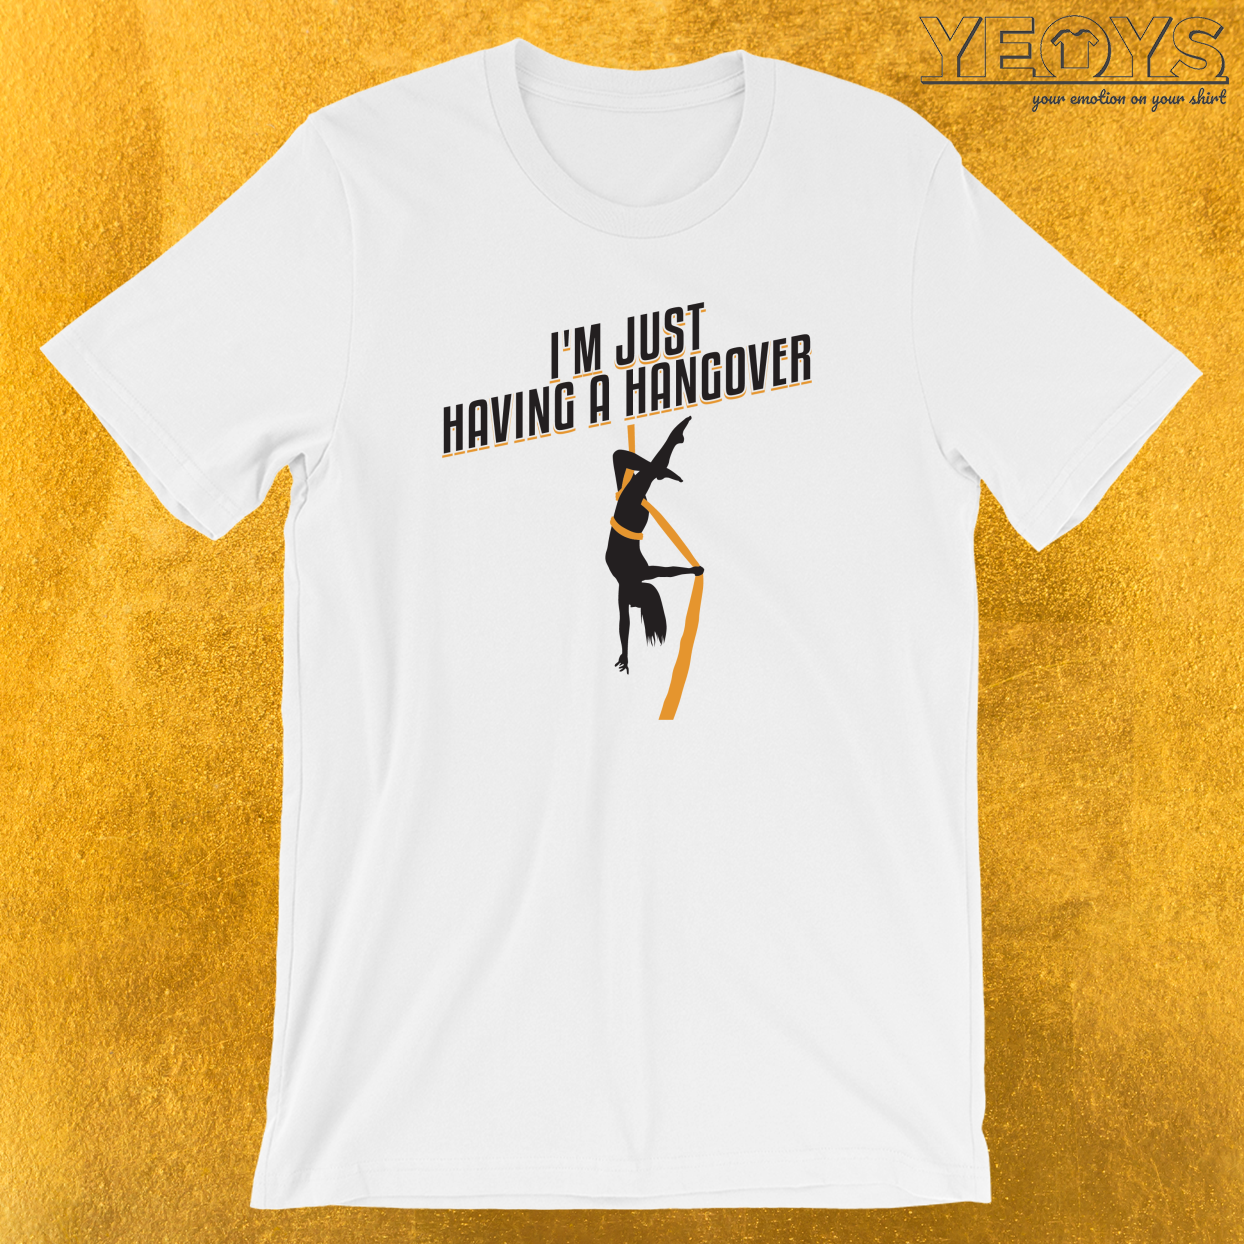 I'm Just Having A Hangover T-Shirt